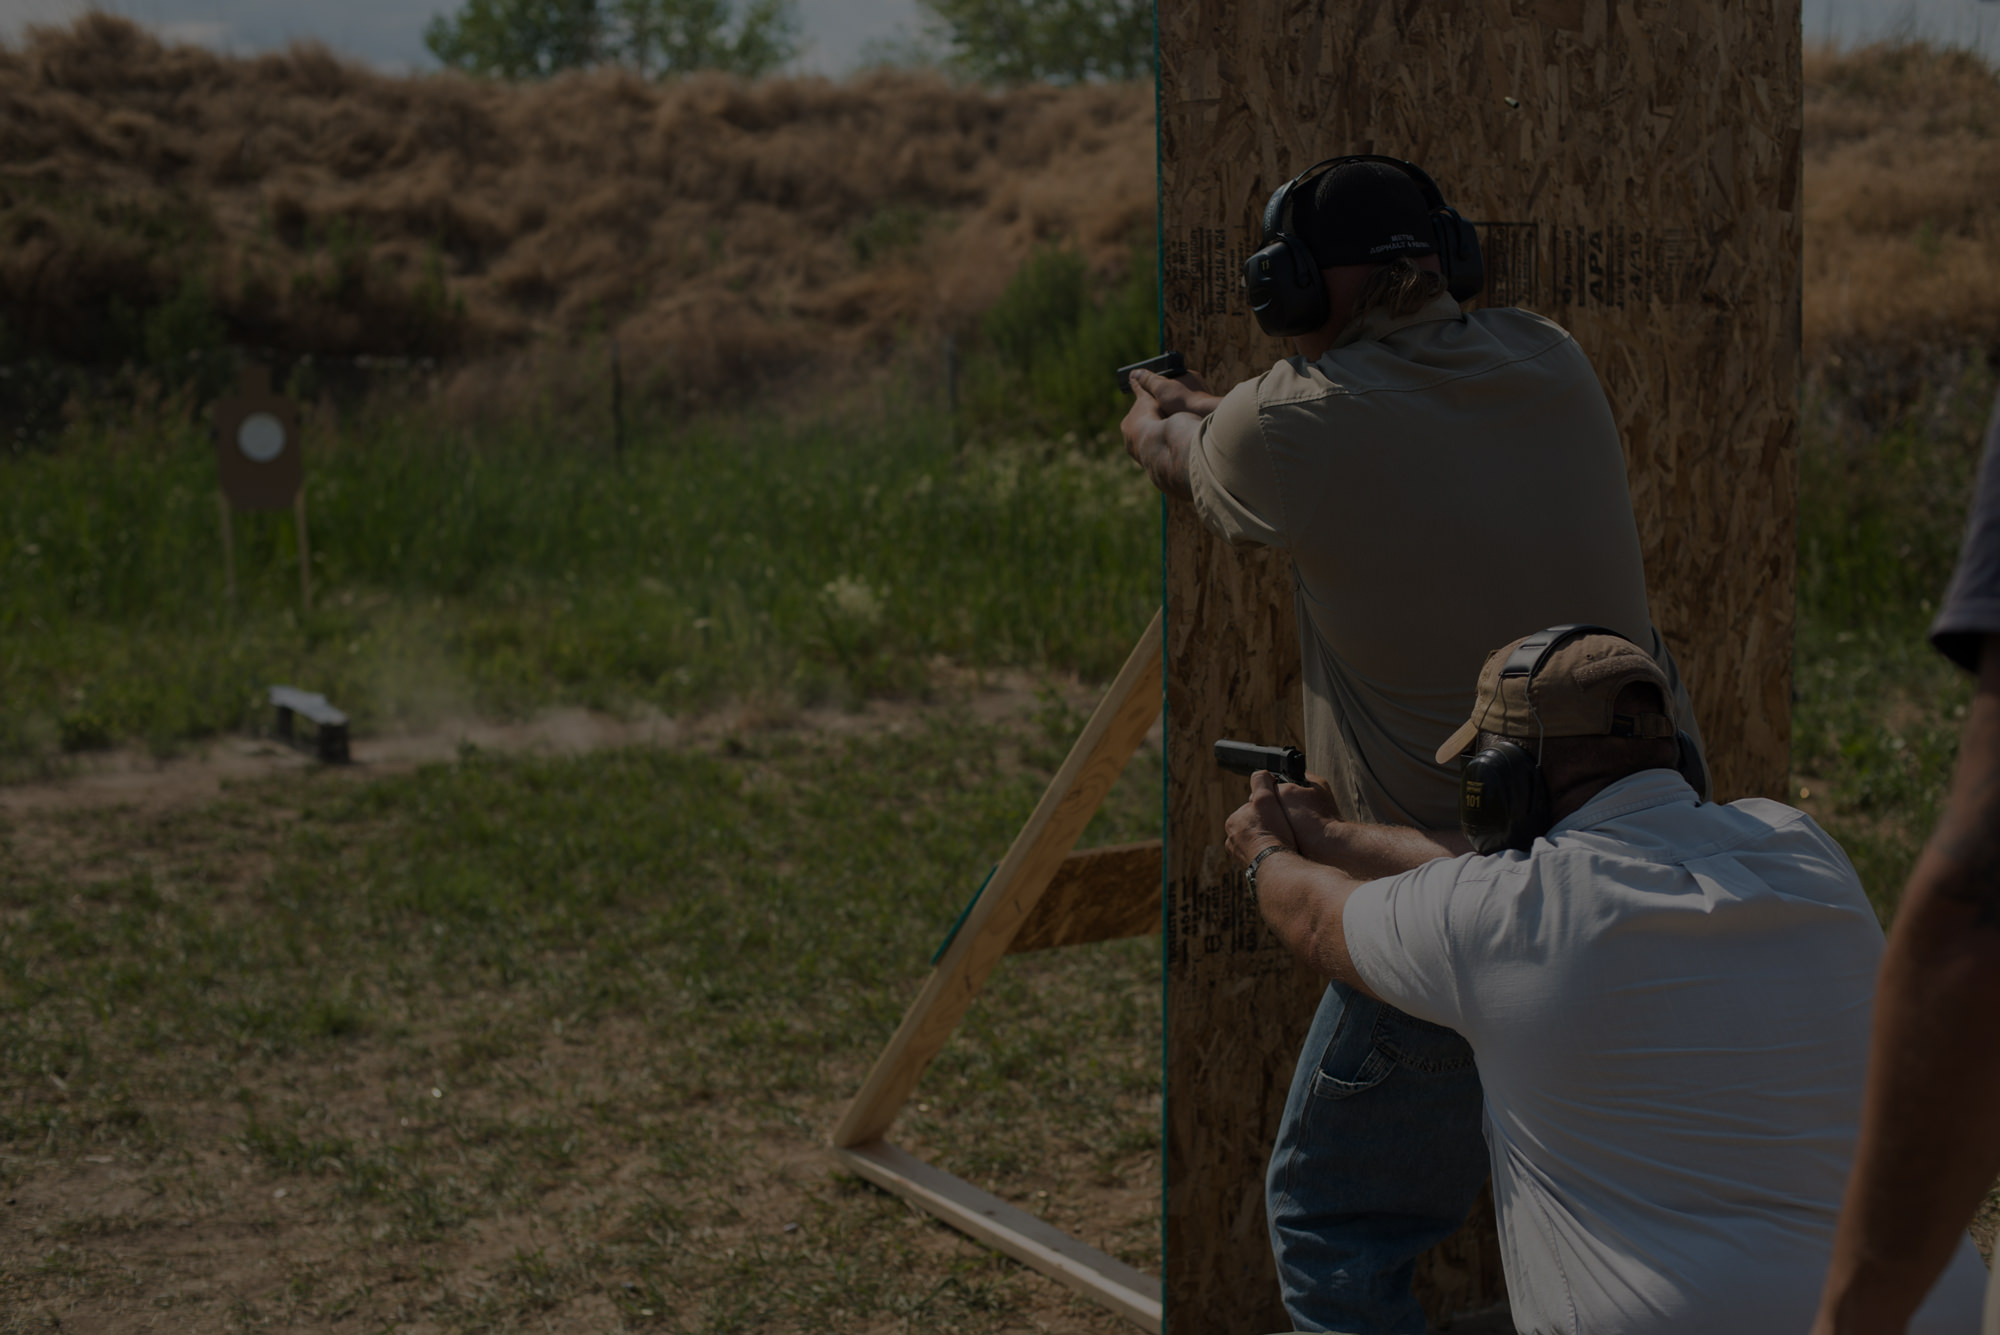 Firearm and self-defense training in Denver, Colorado